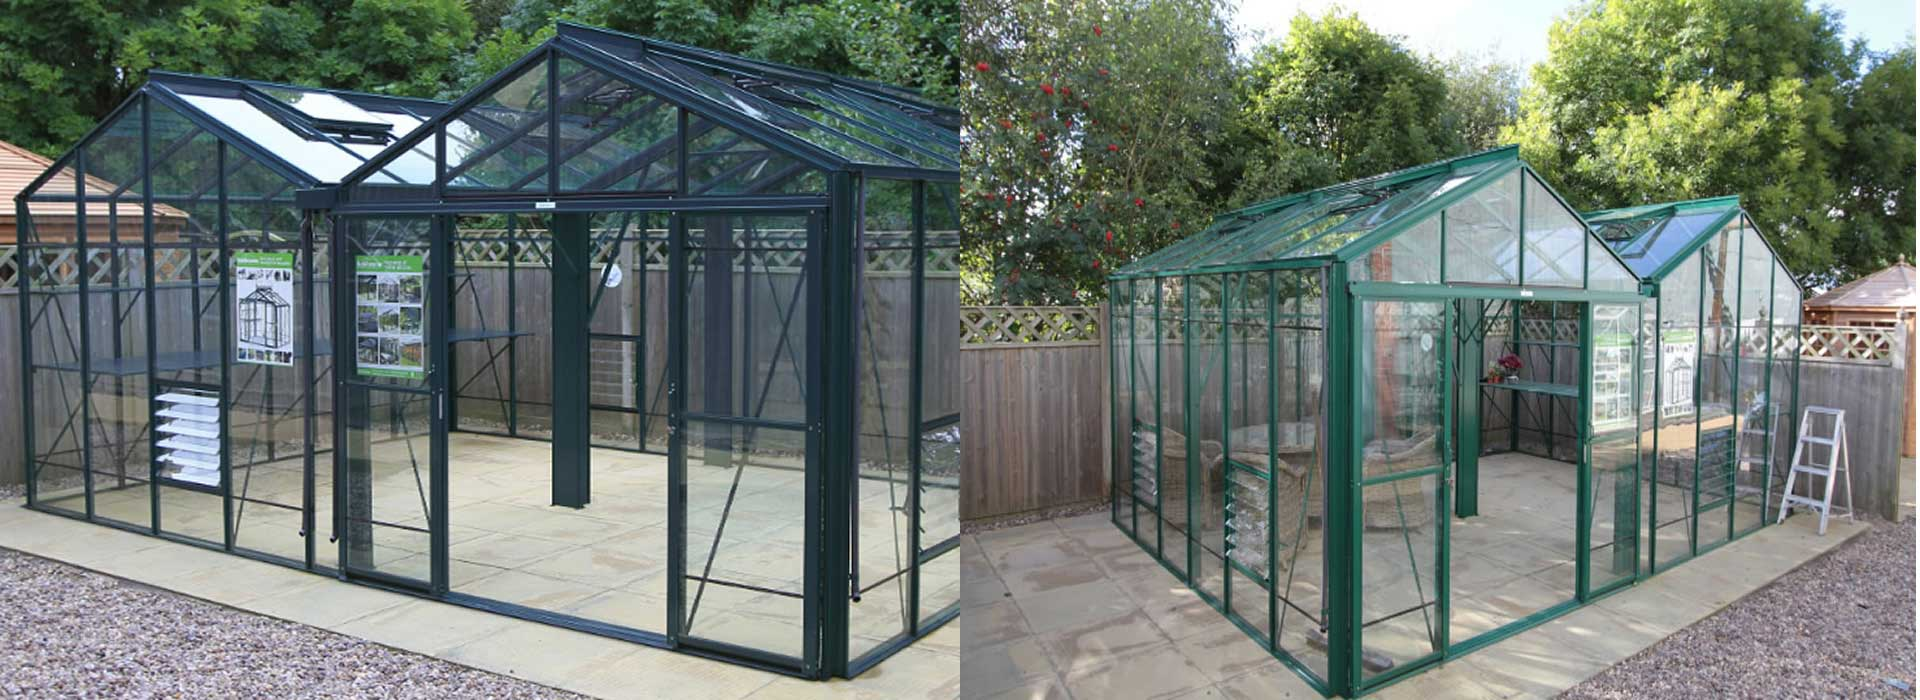 Robinsons Royale ReachDouble Span Greenhouses